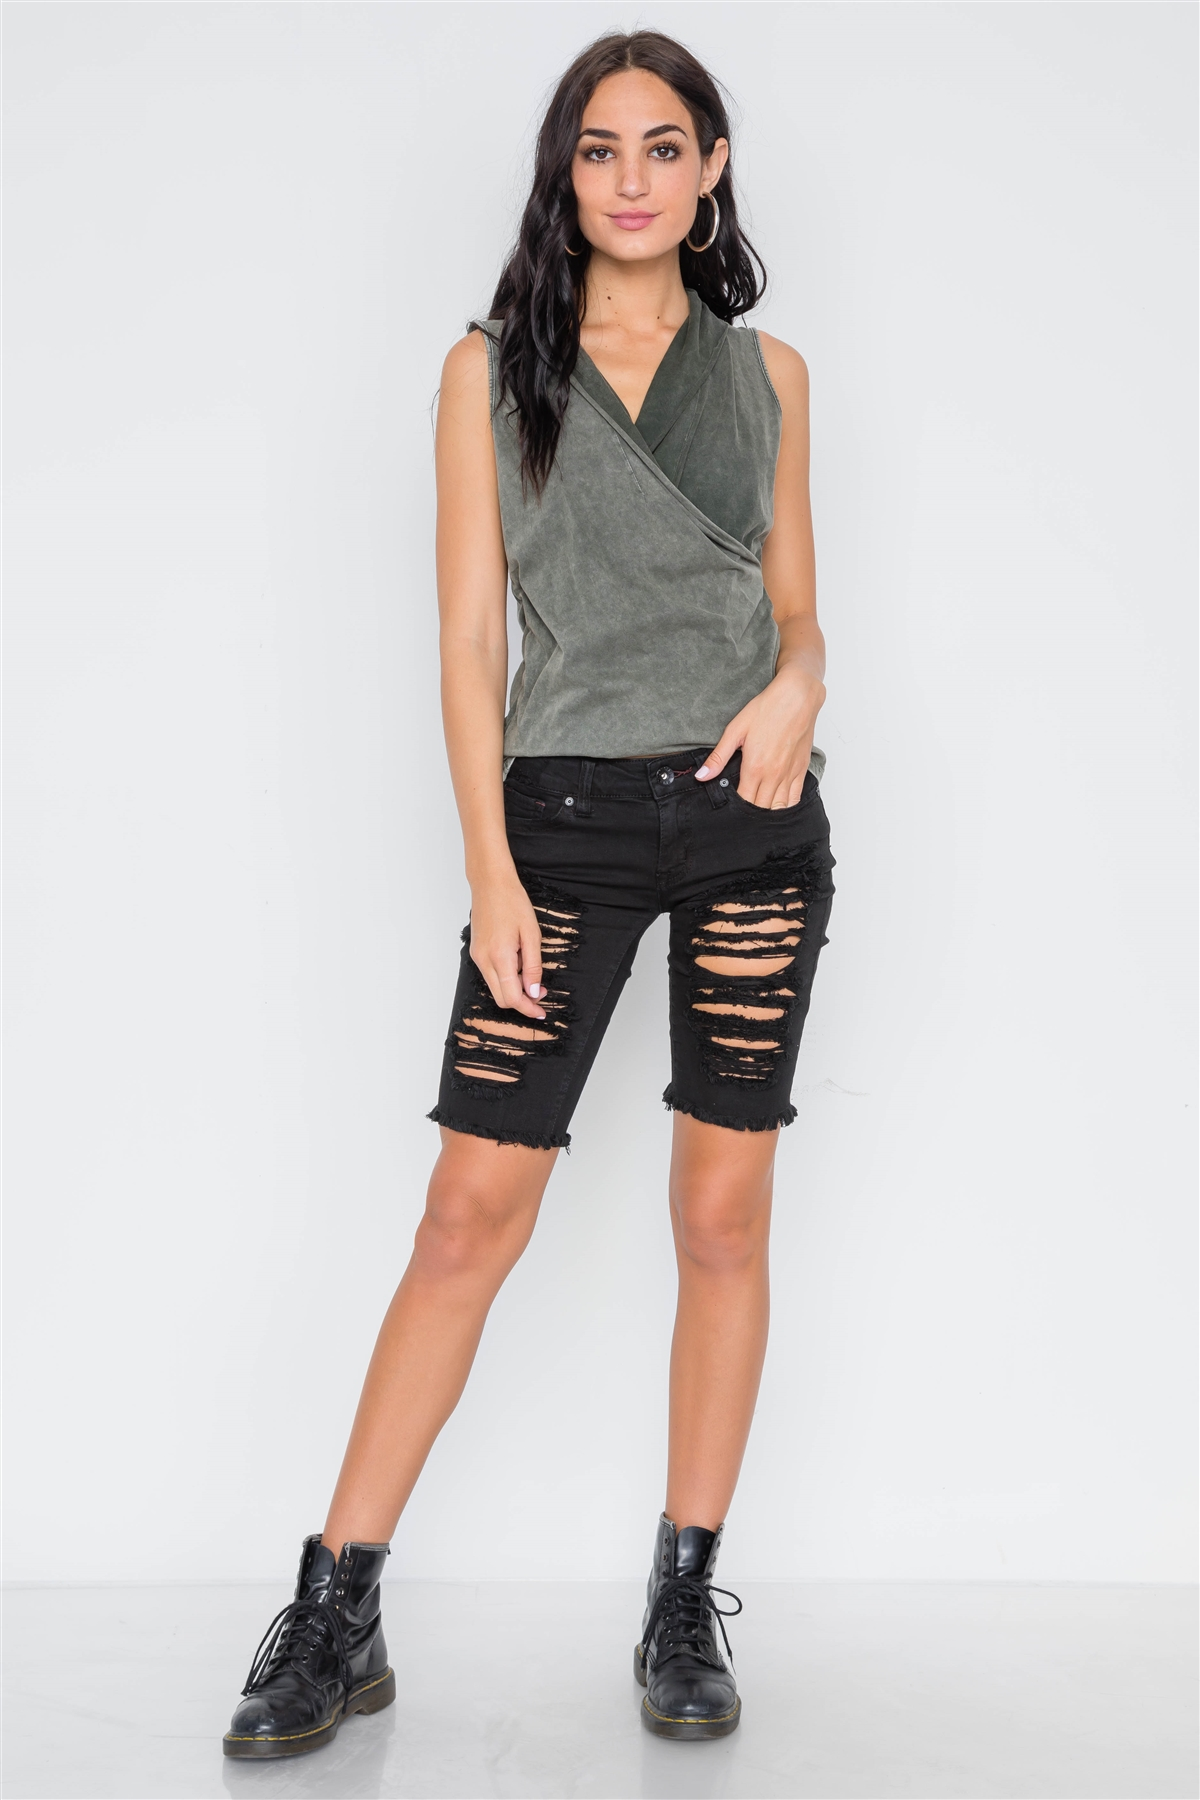 d4382aeb86d9d9 Army Olive Surplice Neck Sleeveless Top /3-2-1